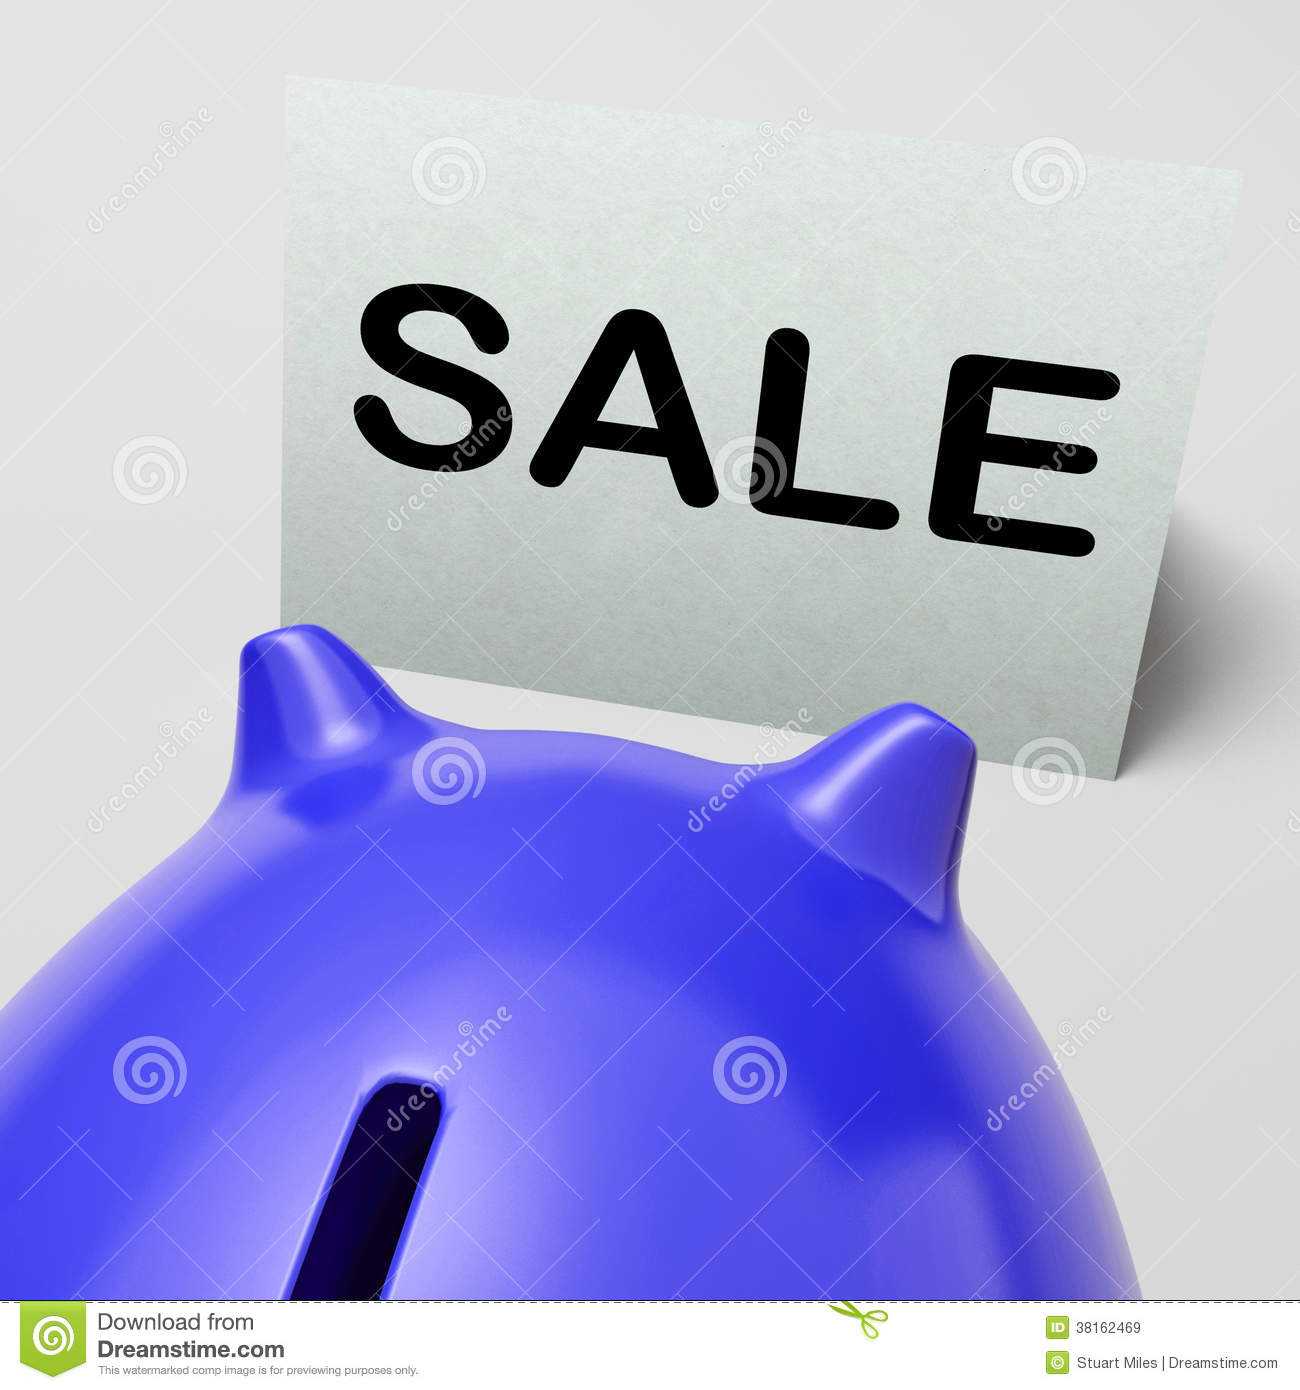 Cheap Piggy Banks For Sale Sale Piggy Bank Means Bargain Promo Or Clearance Stock